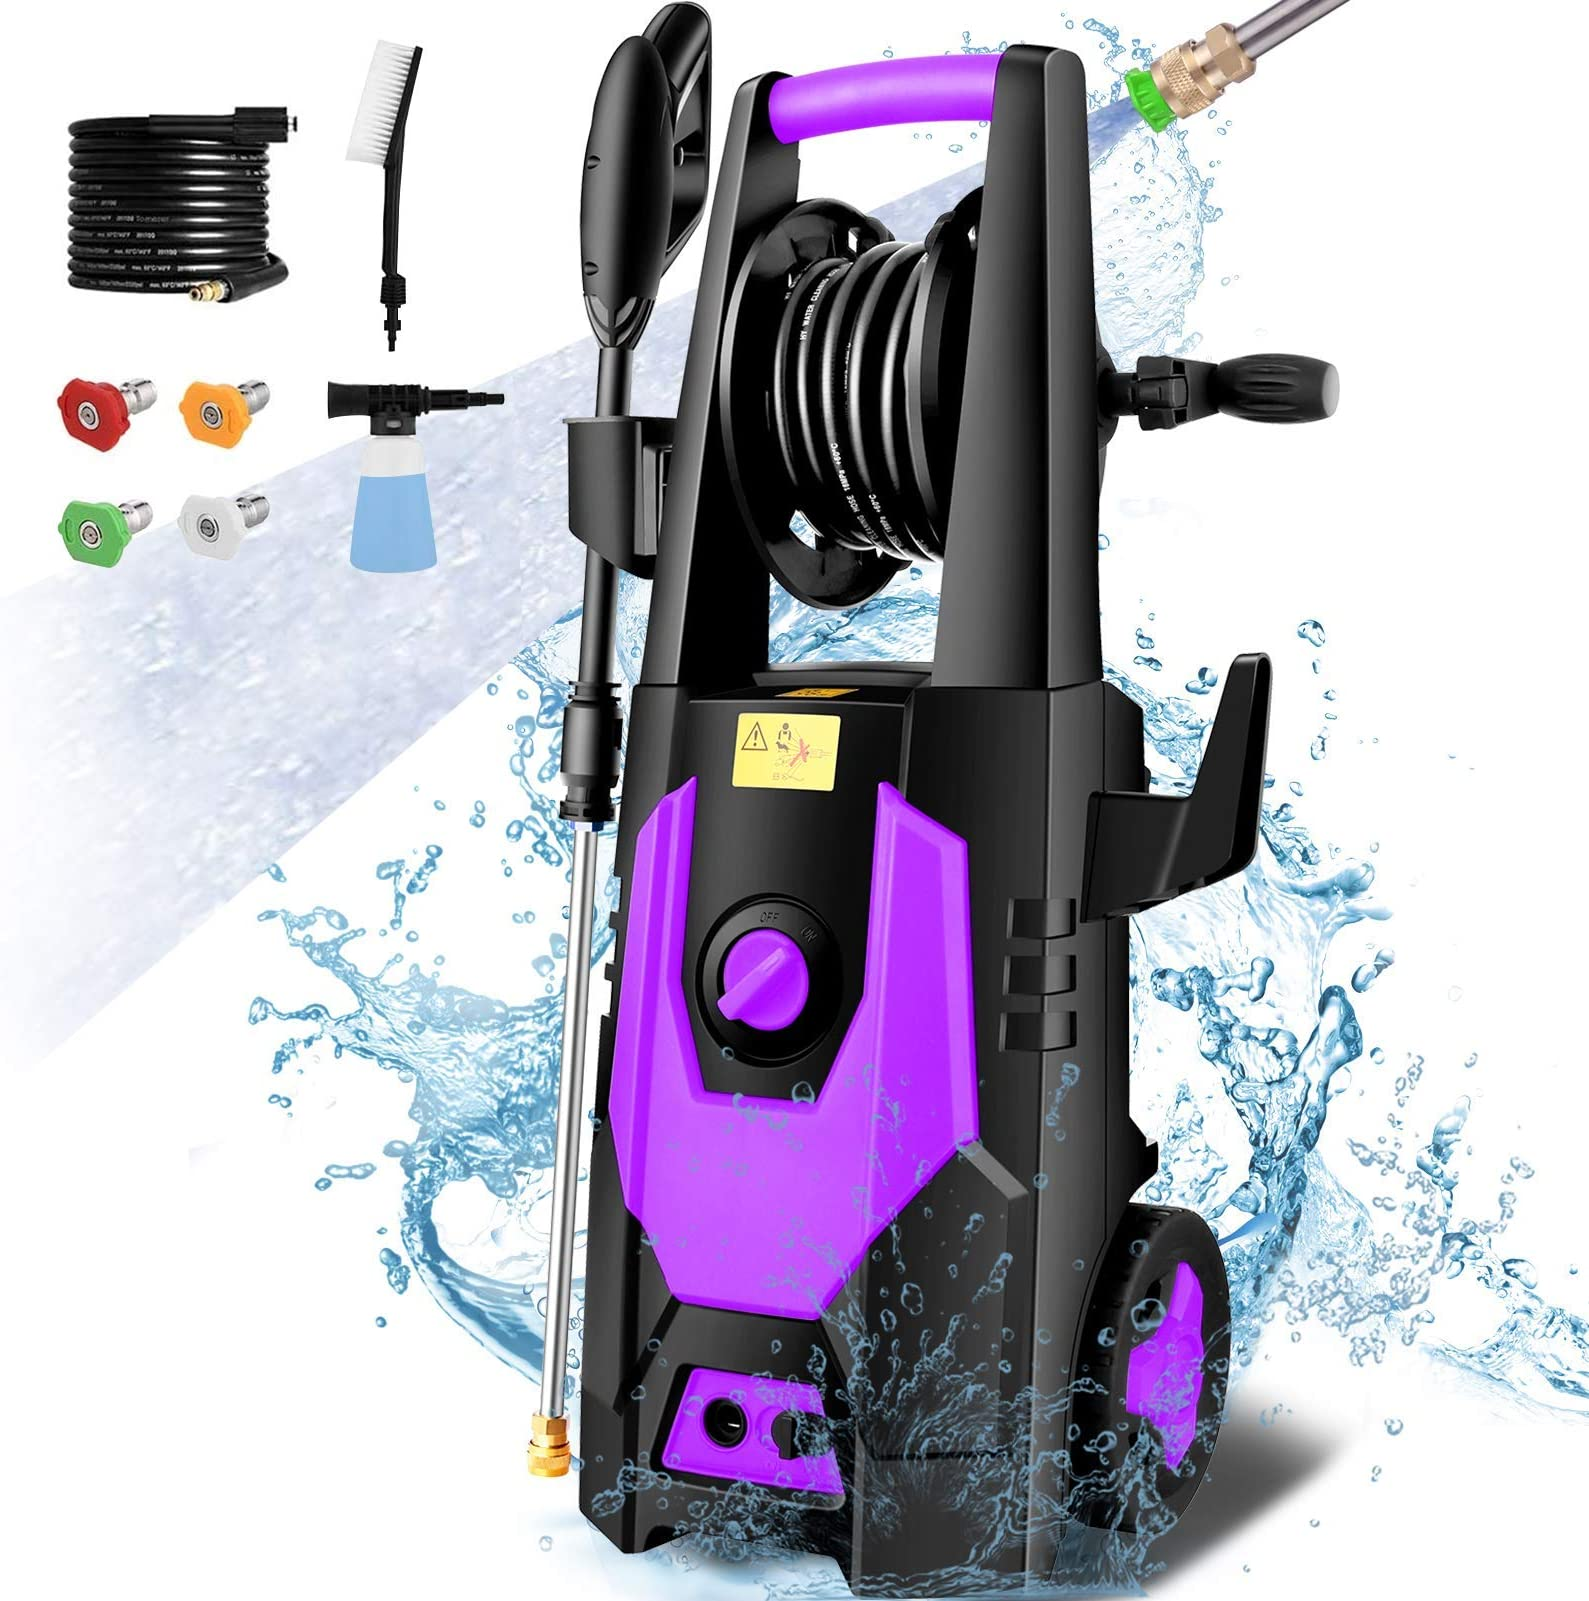 mrliance 3600PSI Electric Pressure Washer 2.4GPM Power Washer 1800W High Pressure Washer Cleaner Machine with 4 Interchangeable Nozzle & Hose Reel, Best for Cleaning Patio, Garden,Yard,Vehicle